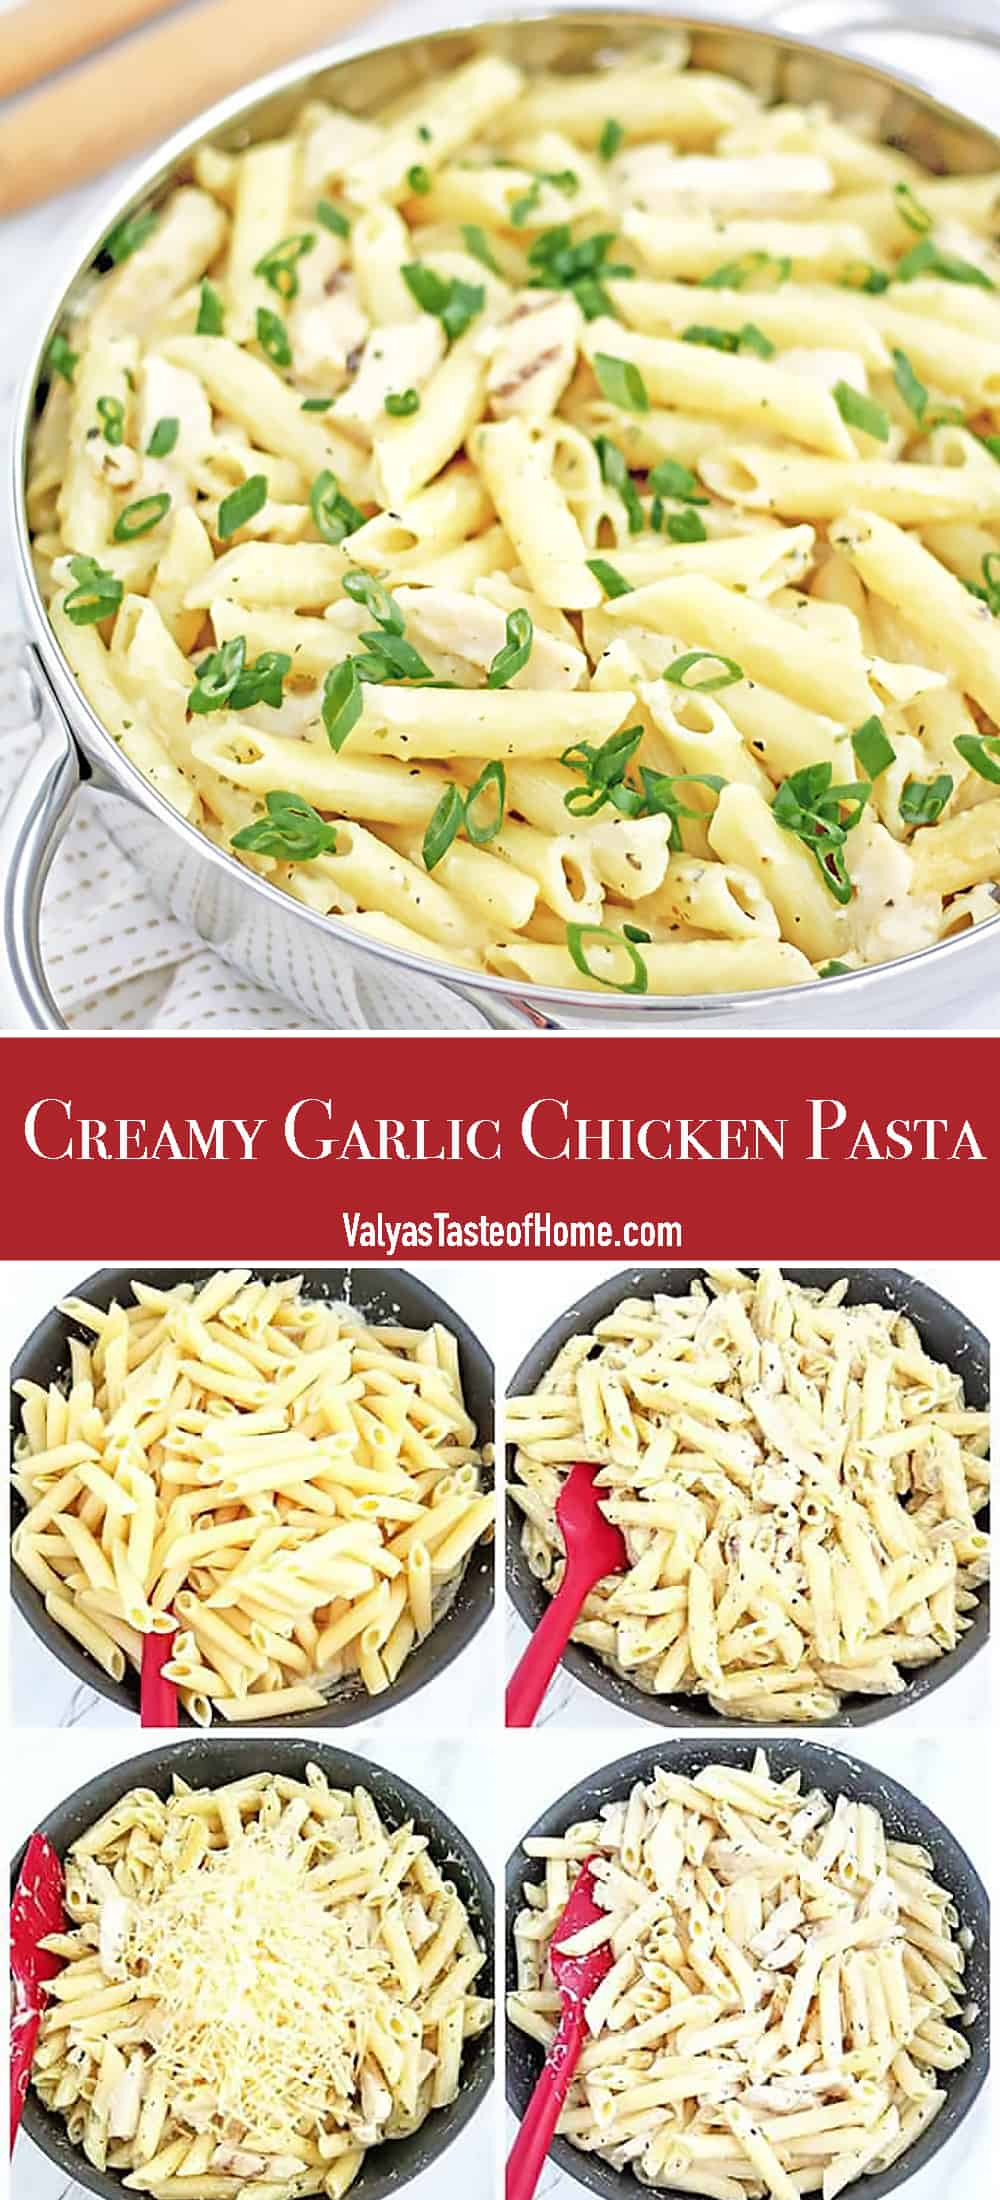 This Creamy Garlic Chicken Pasta is fairly quick to produce if you use frozen, ready-cooked chicken strips. If you prefer to prepare your own chicken, it should be done before you begin this recipe.